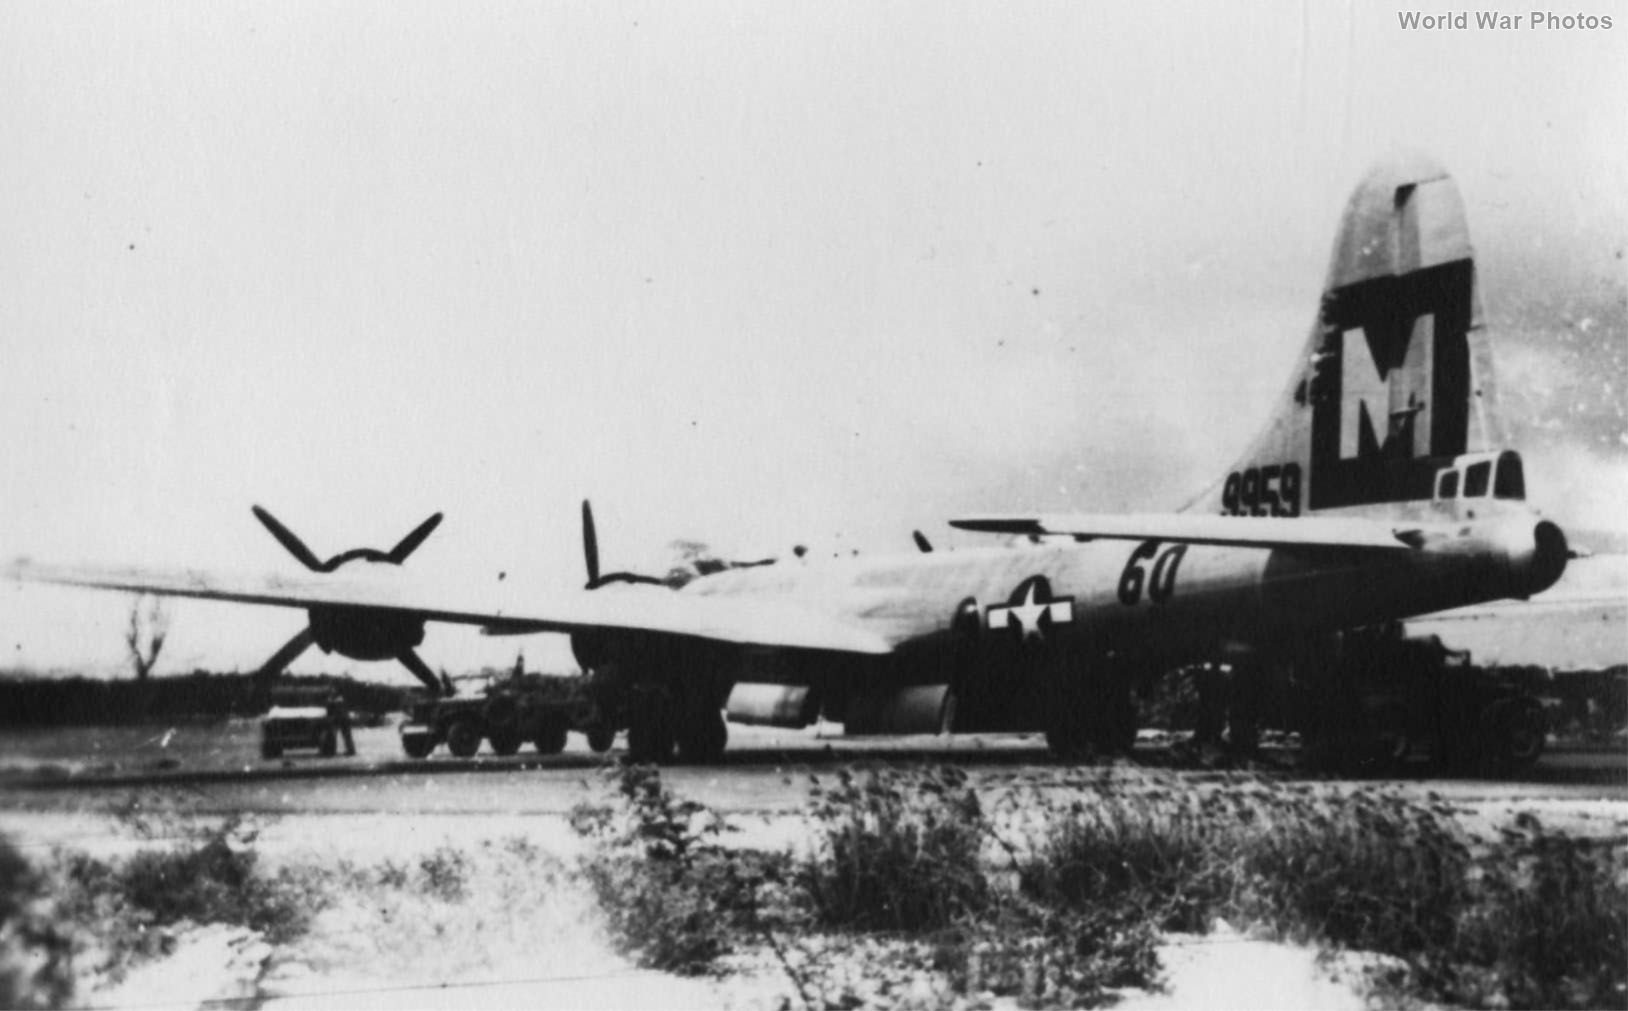 B-29 44-69959 of the 19th BG